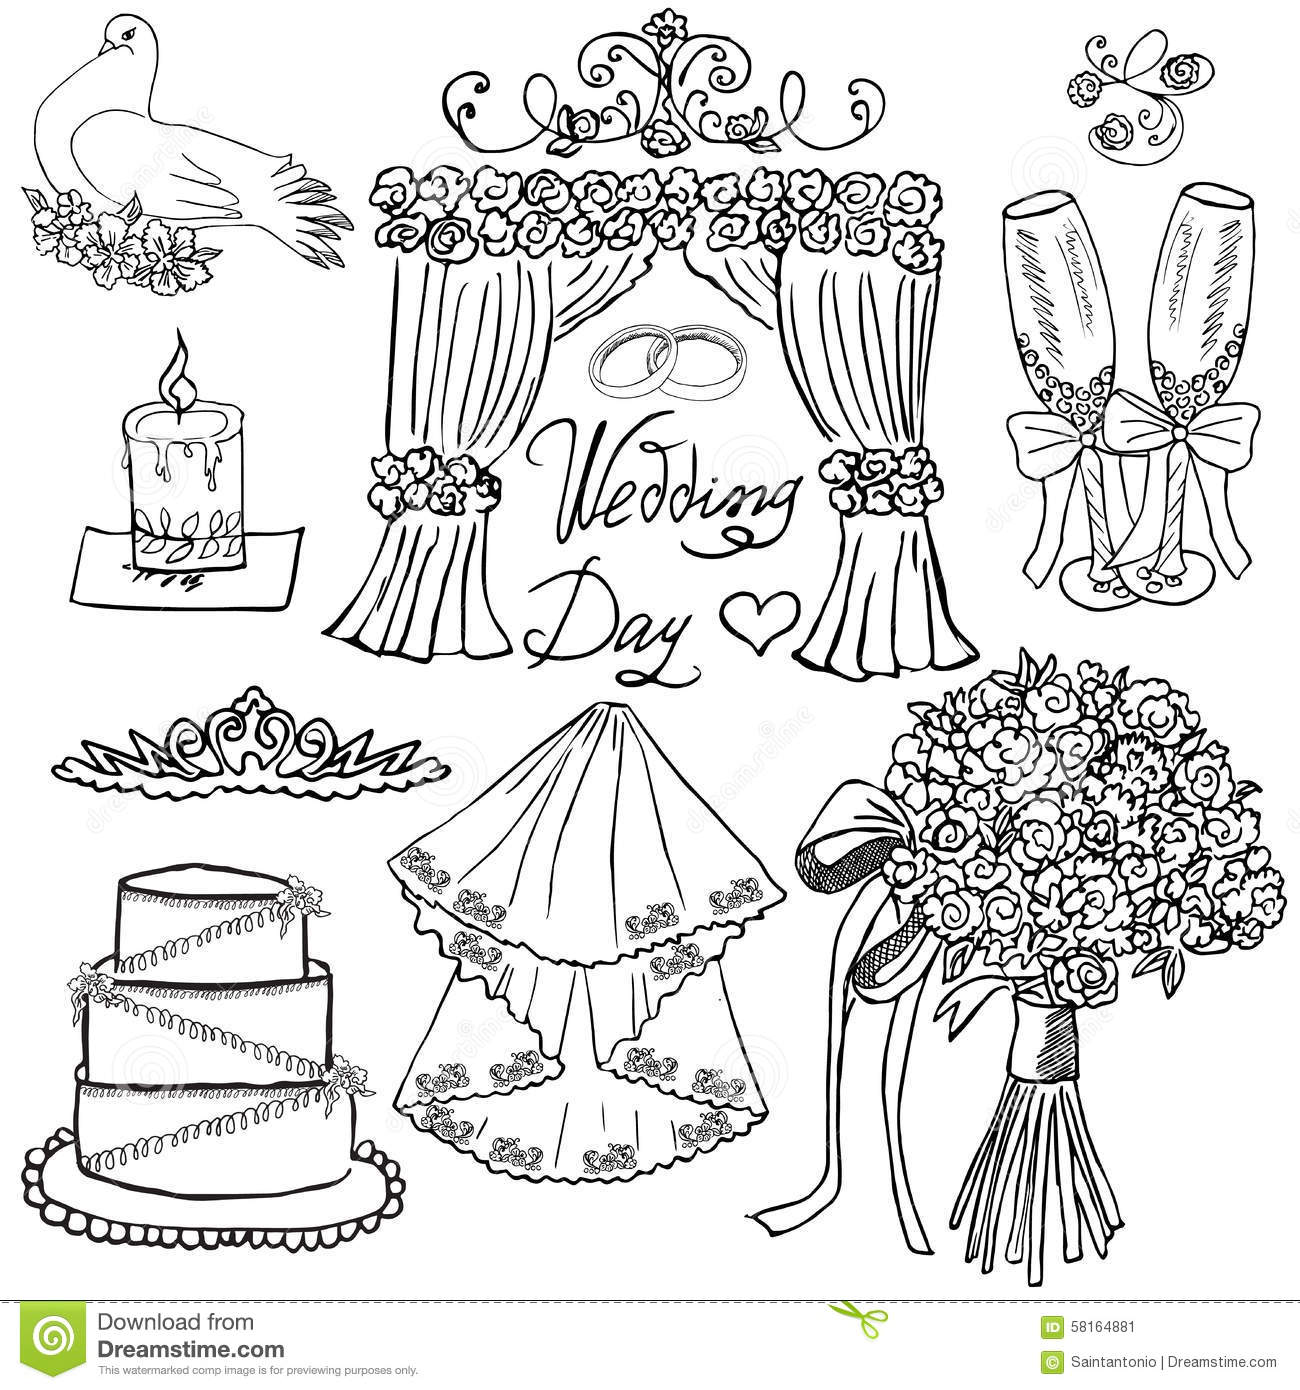 Stock Illustration Wedding Day Elements Hand Drawn Set Flowers Candle Glasses Ch aign Festive Attributes Drawing Doodle Collection Image58164881 on vintage romance illustrations